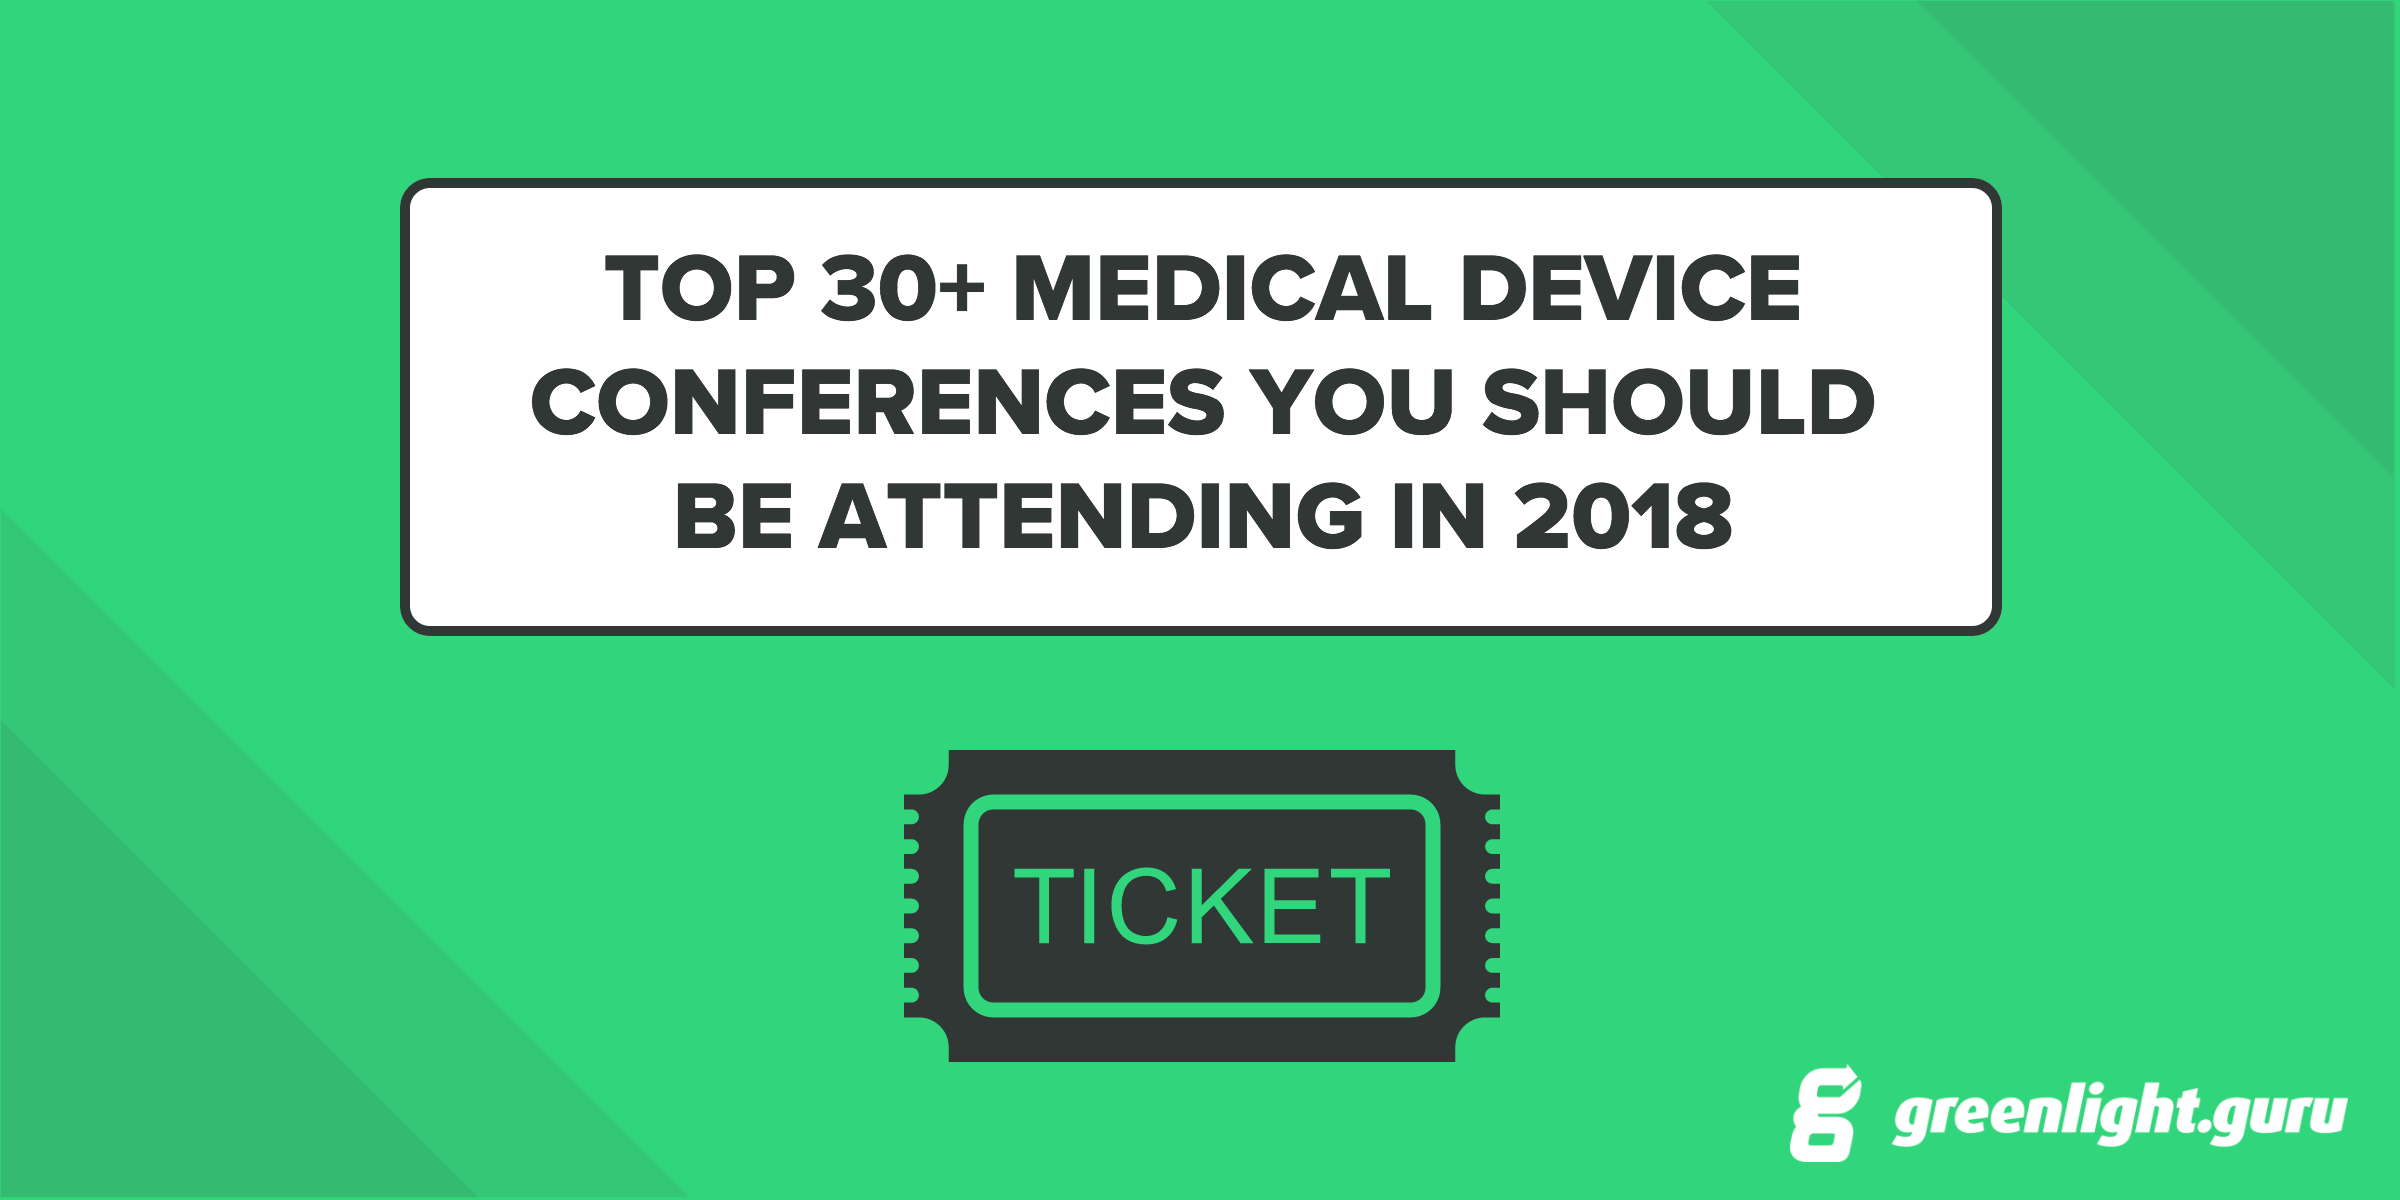 Top 30+ Medical Device Conferences You Should Be Attending in 2018